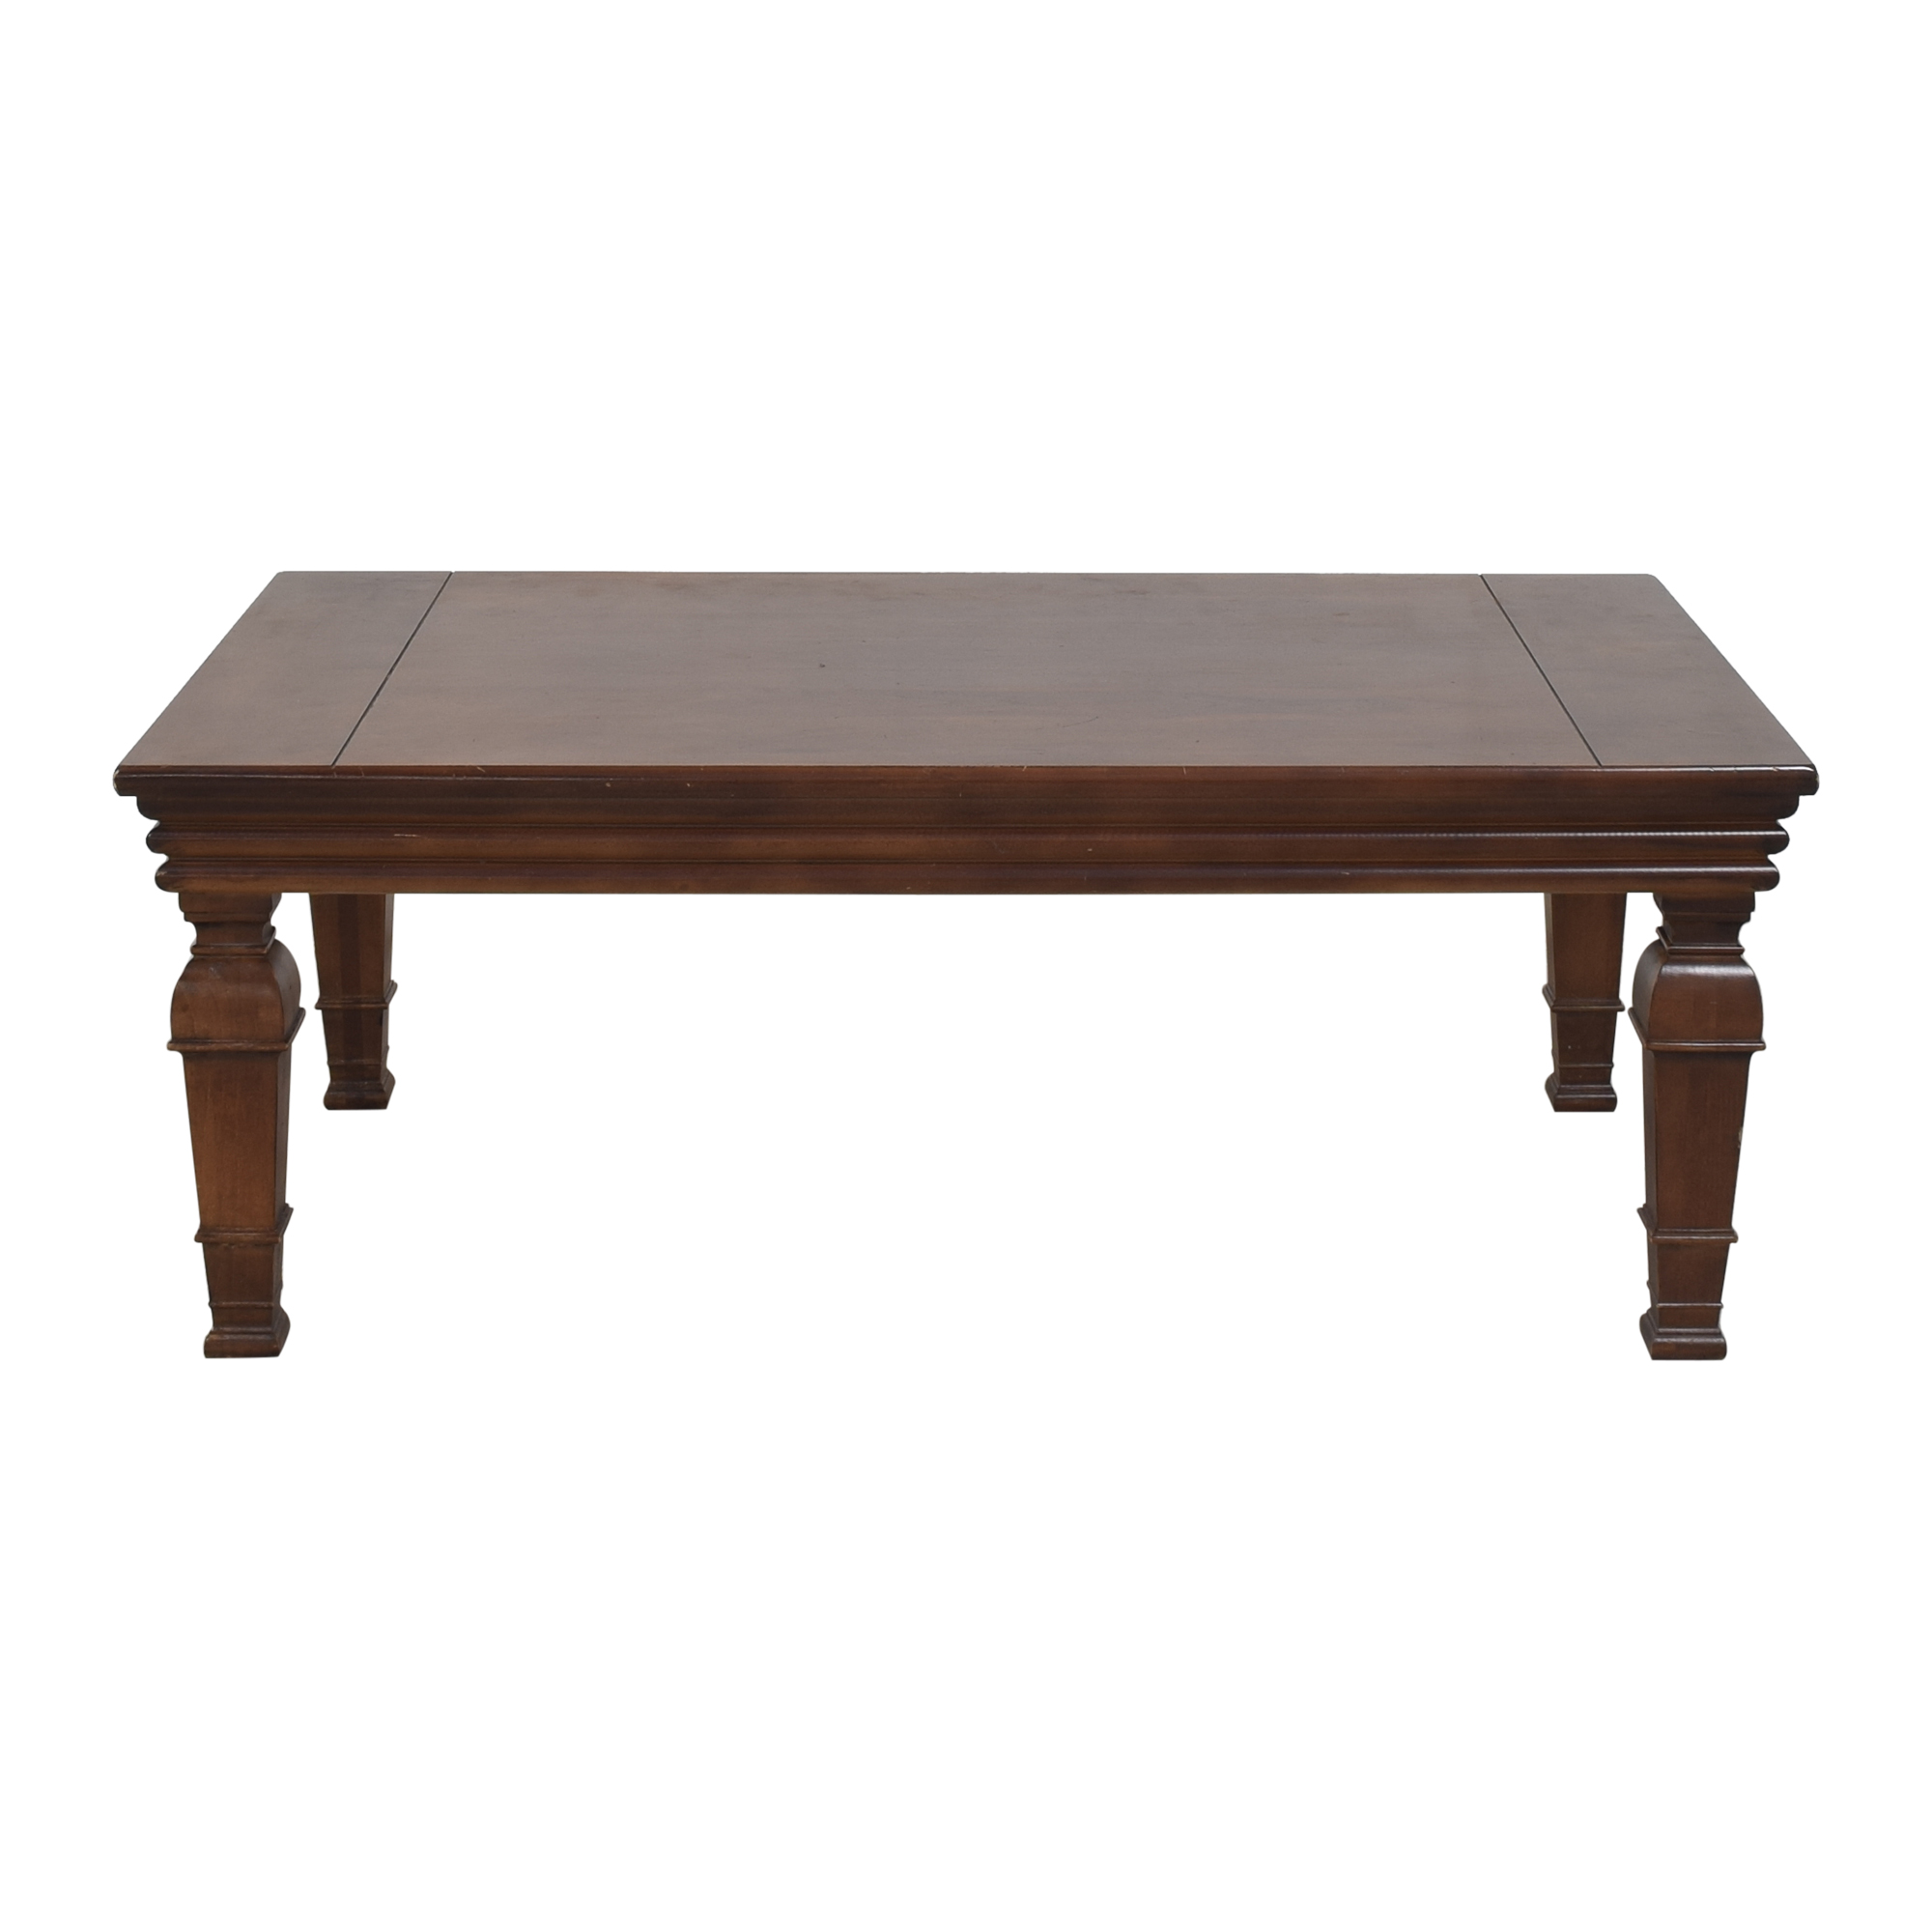 Lane Furniture Lane Furniture Rectangular Coffee Table ct